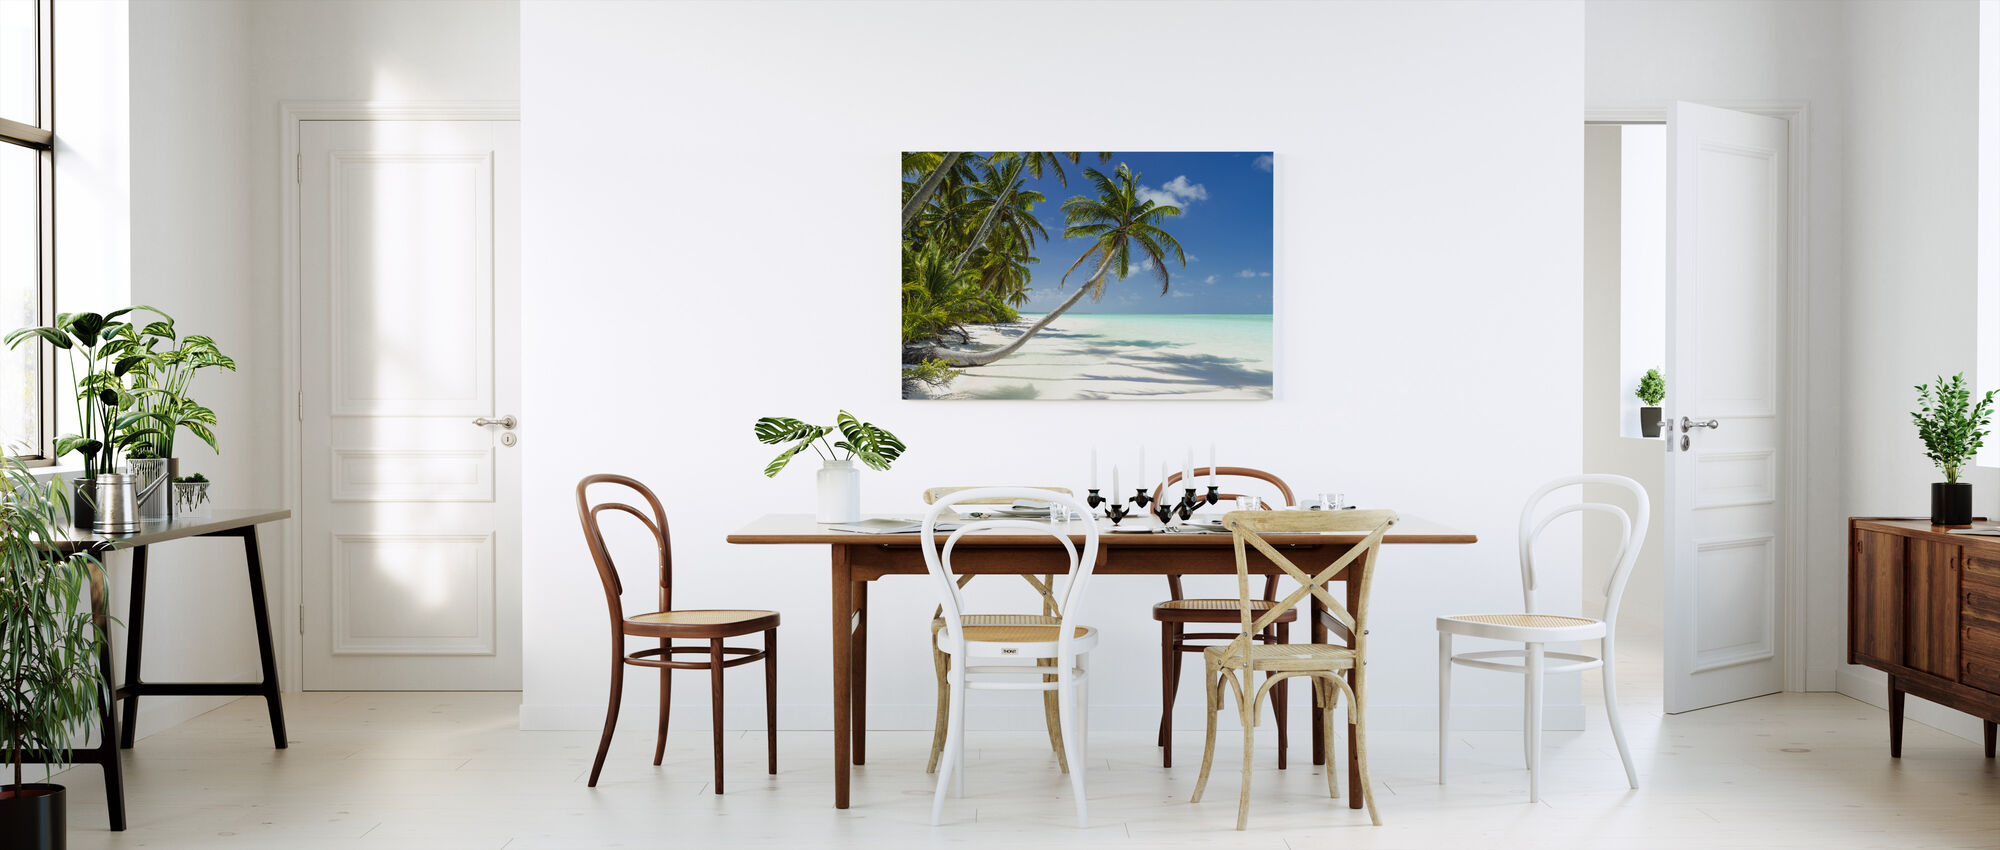 Lagoon and Palm Trees - Canvas print - Kitchen